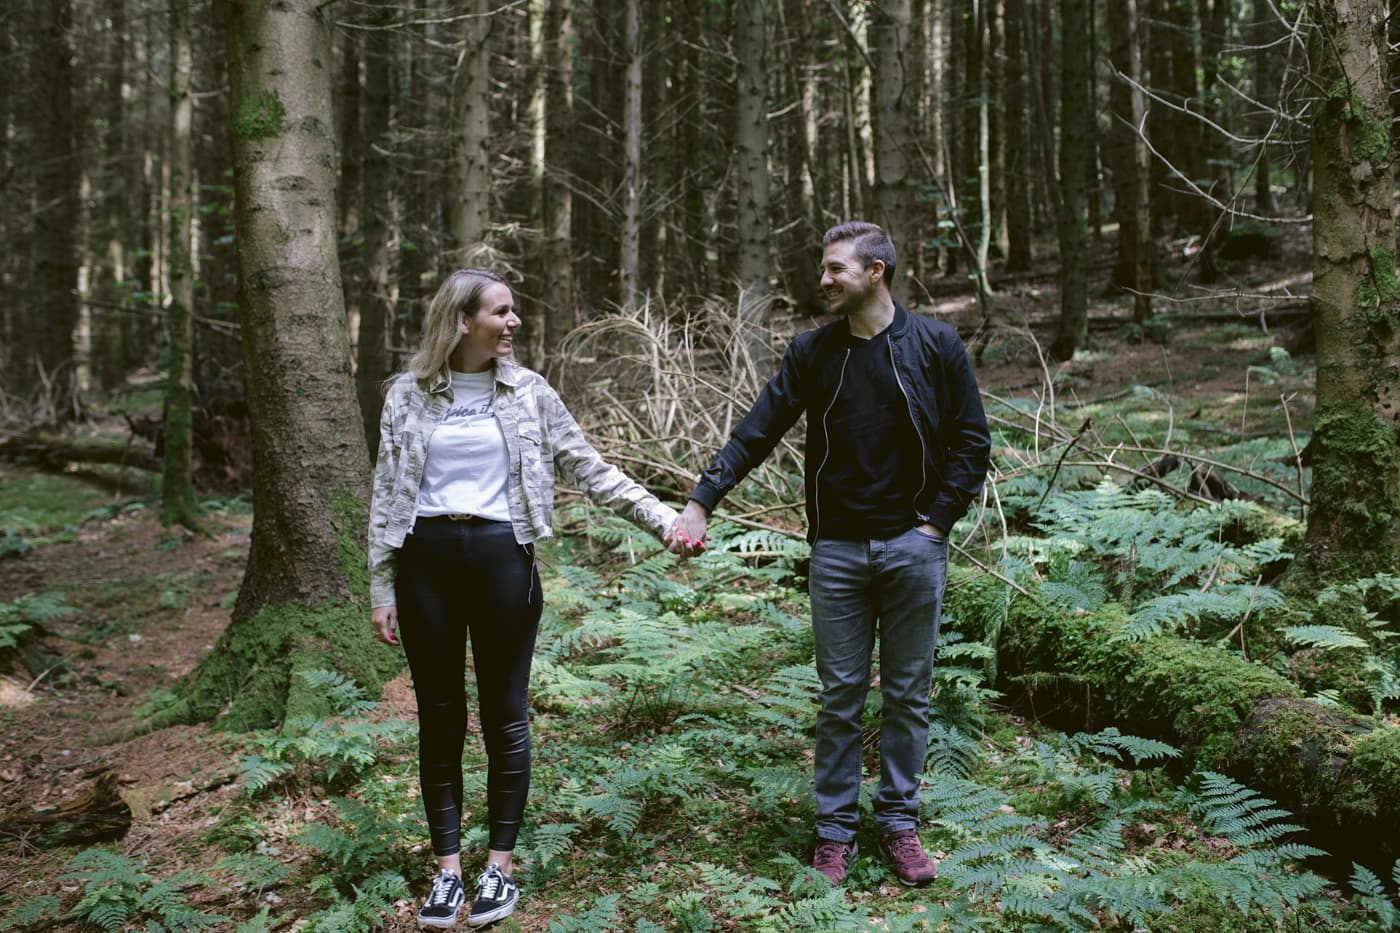 Couple Hands in Forest Gazing in Each Others Eyes Photo Portrait Shoot